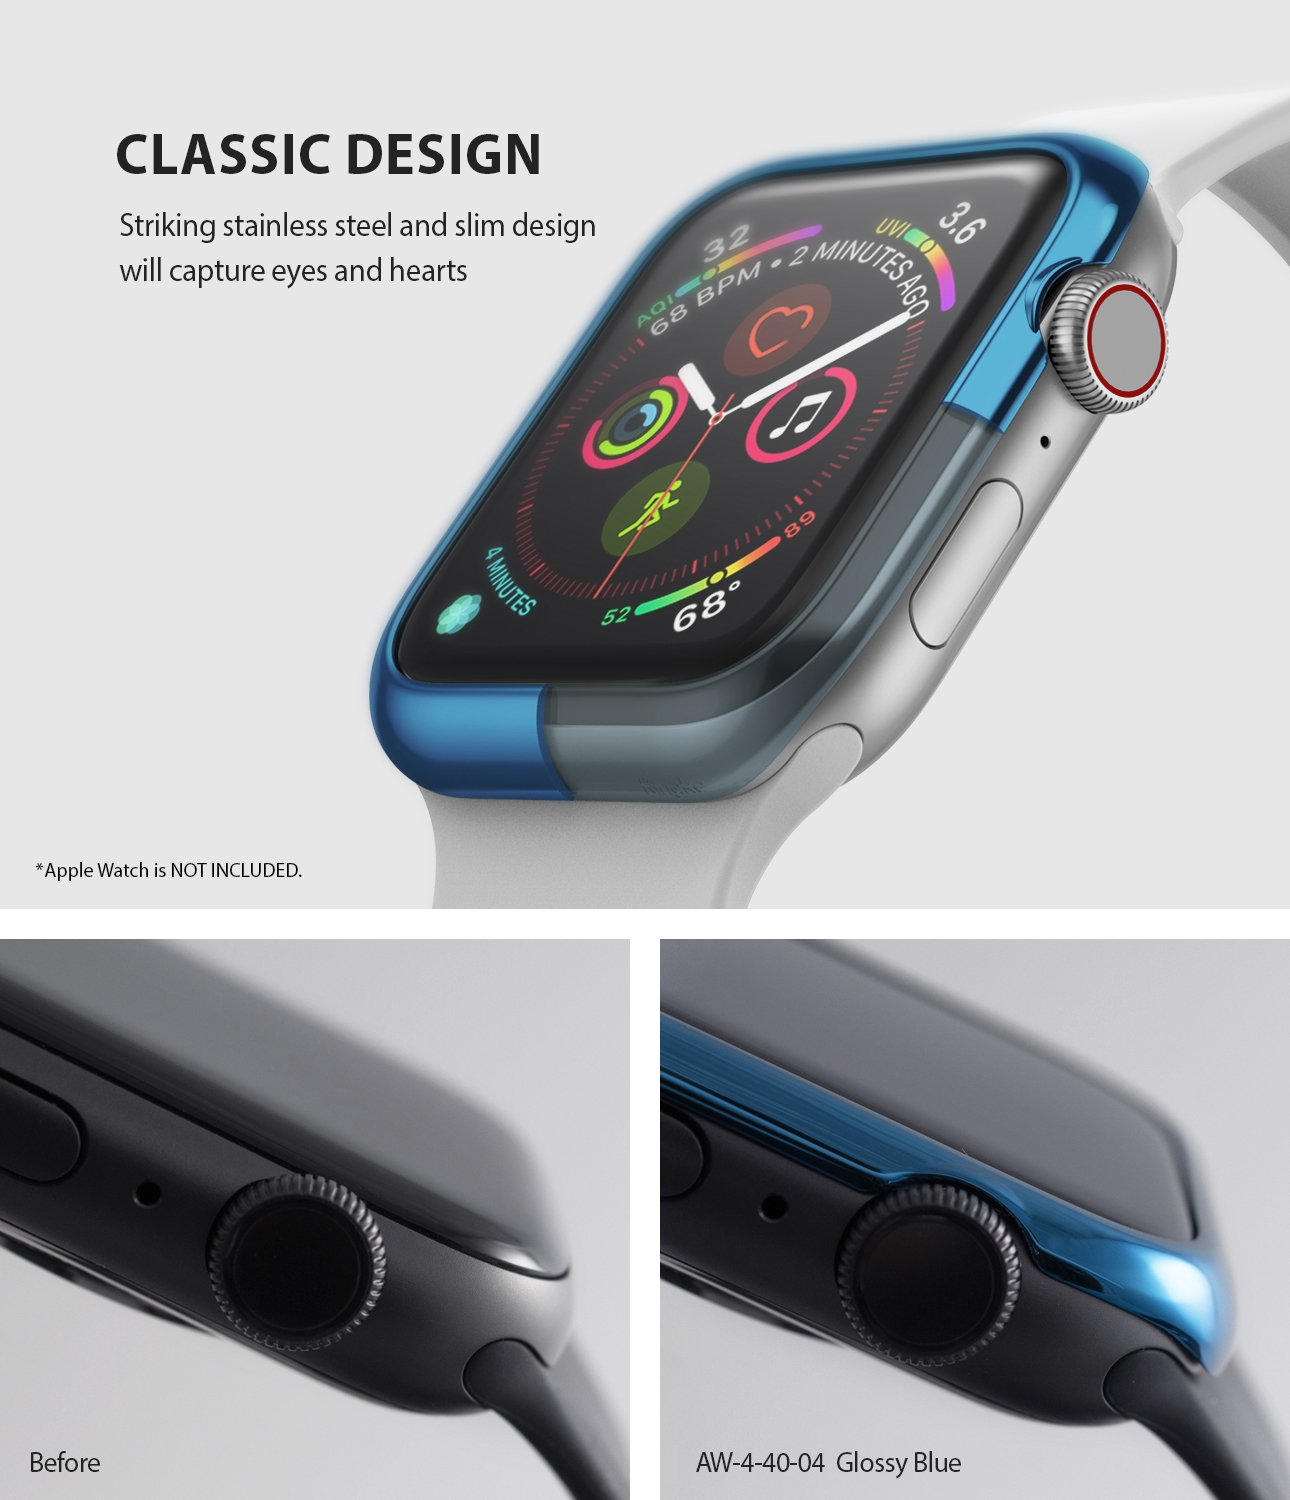 ringke bezel styling 40-04 glossy blue stainless steel on apple watch series 5 / 4 40mm classic design